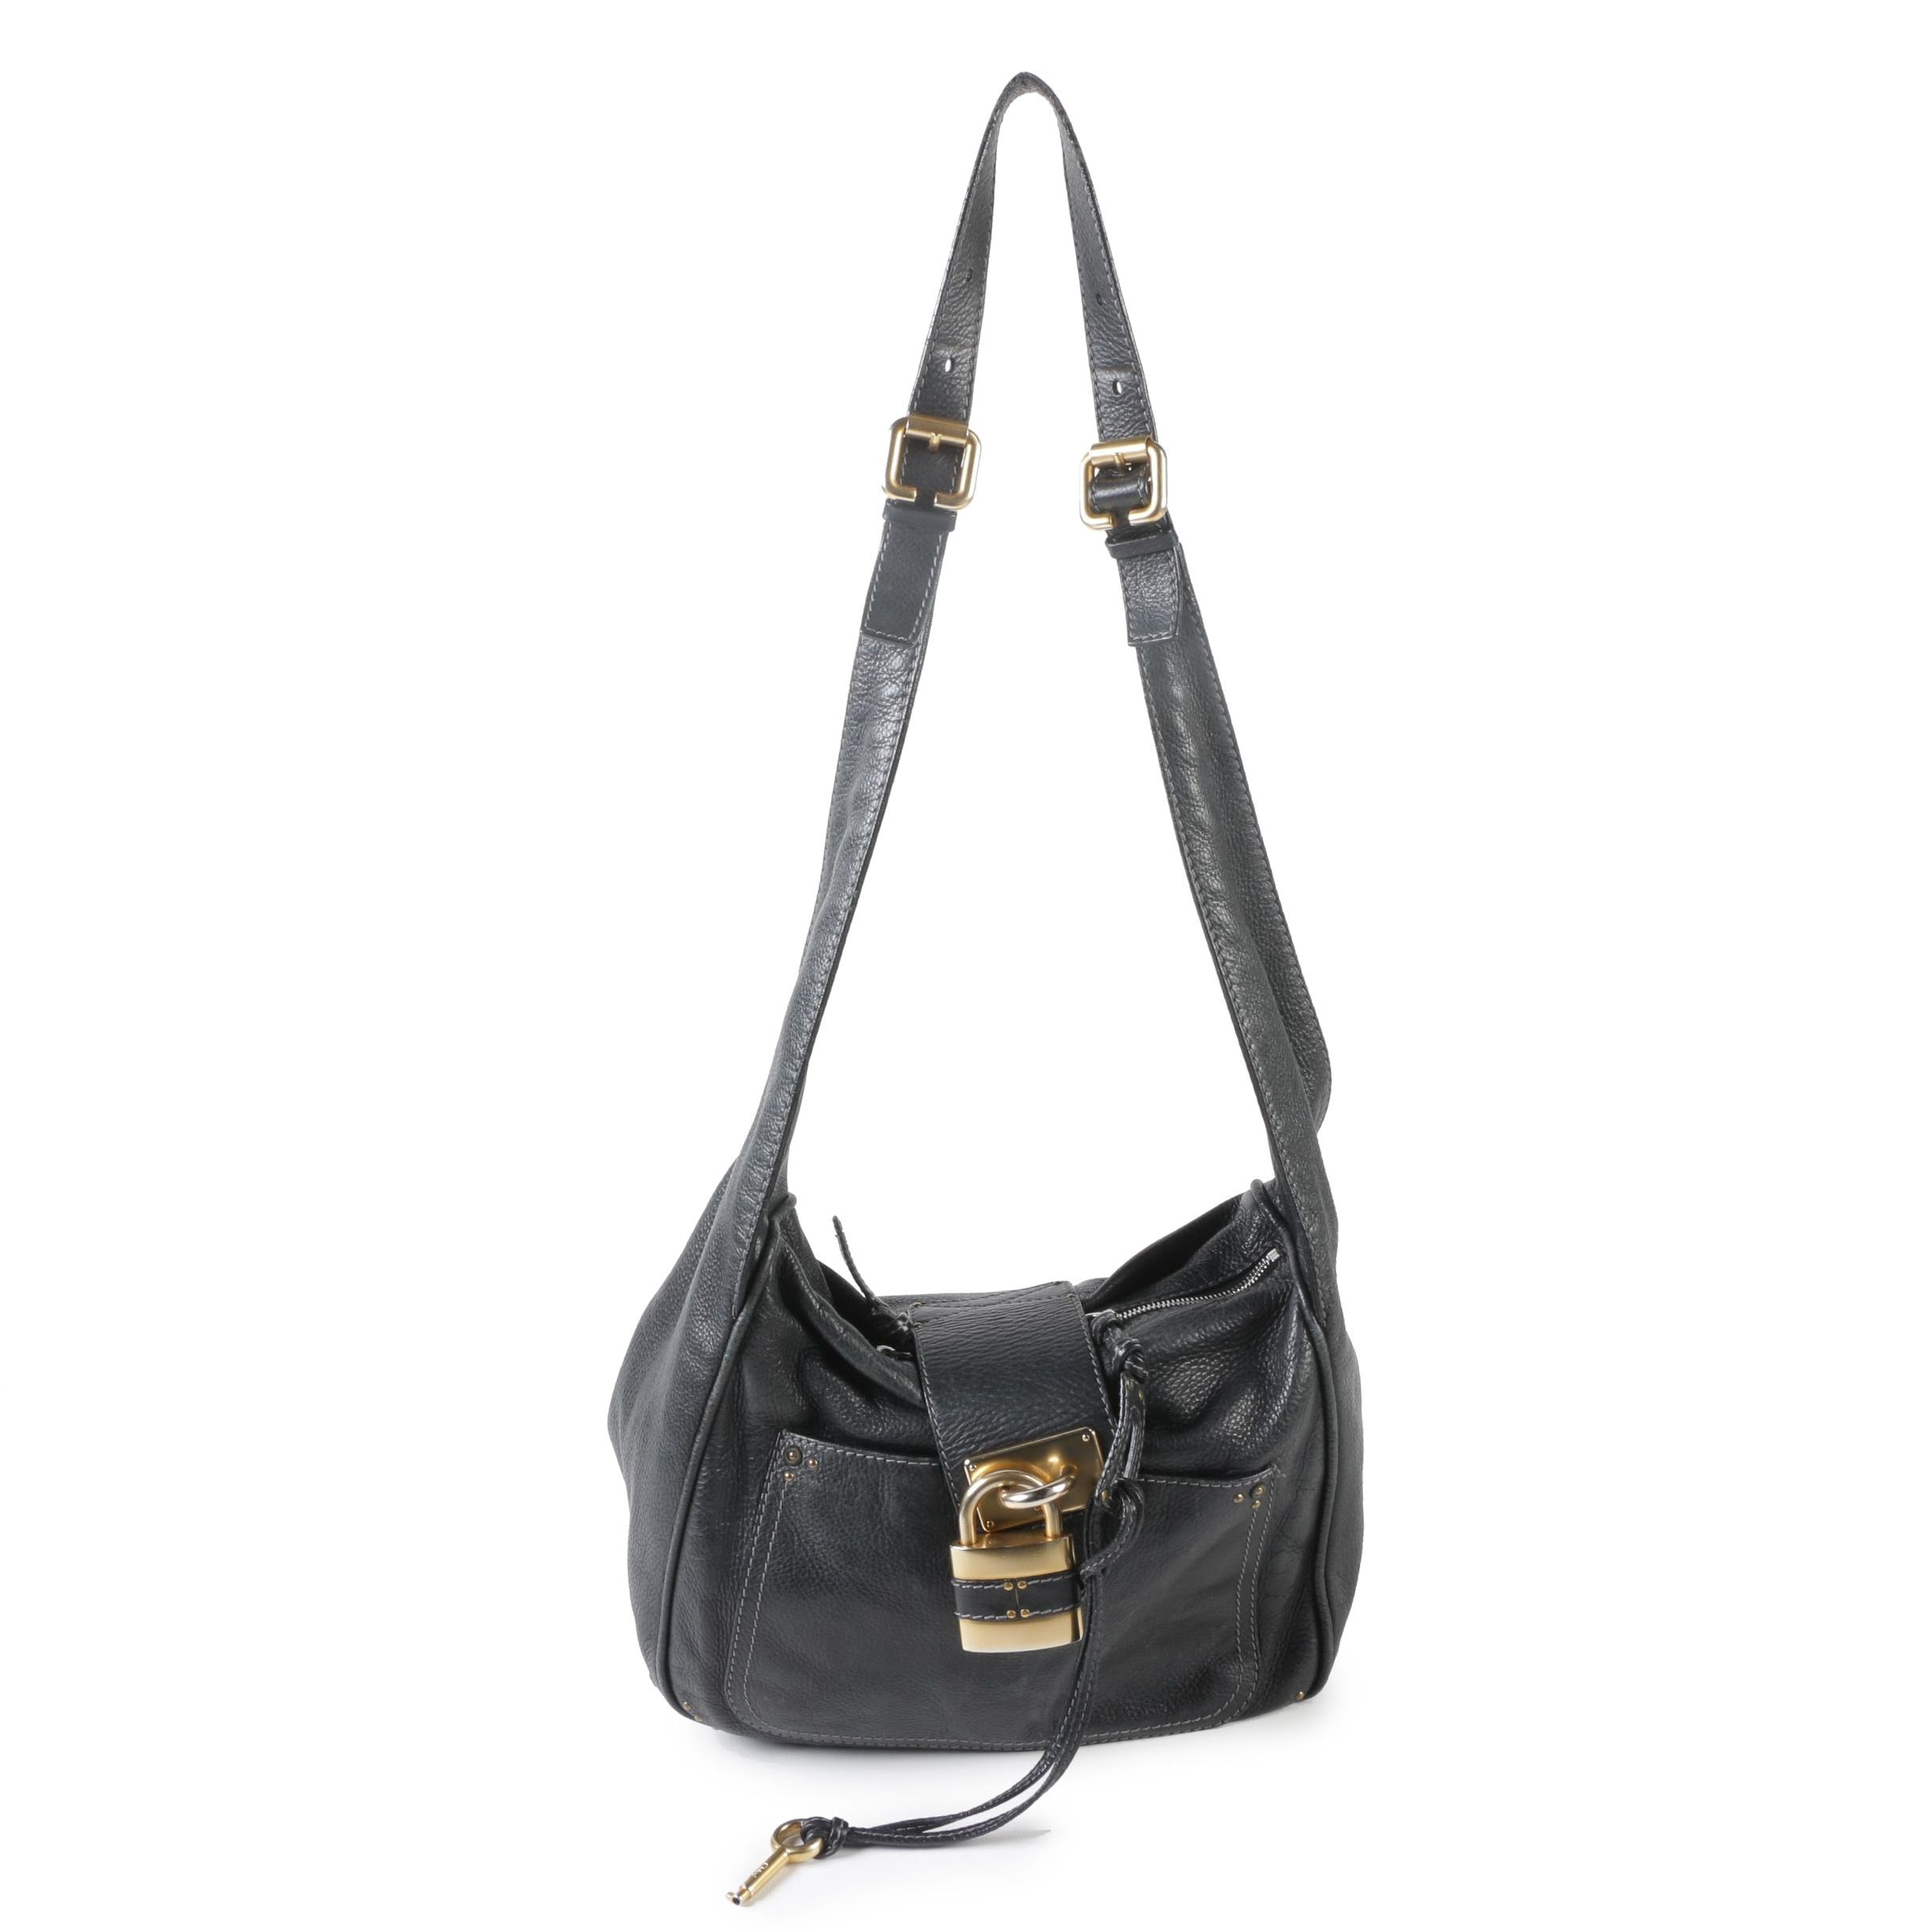 Chloé Black Pebble Grain Leather Paddington Hobo Bag